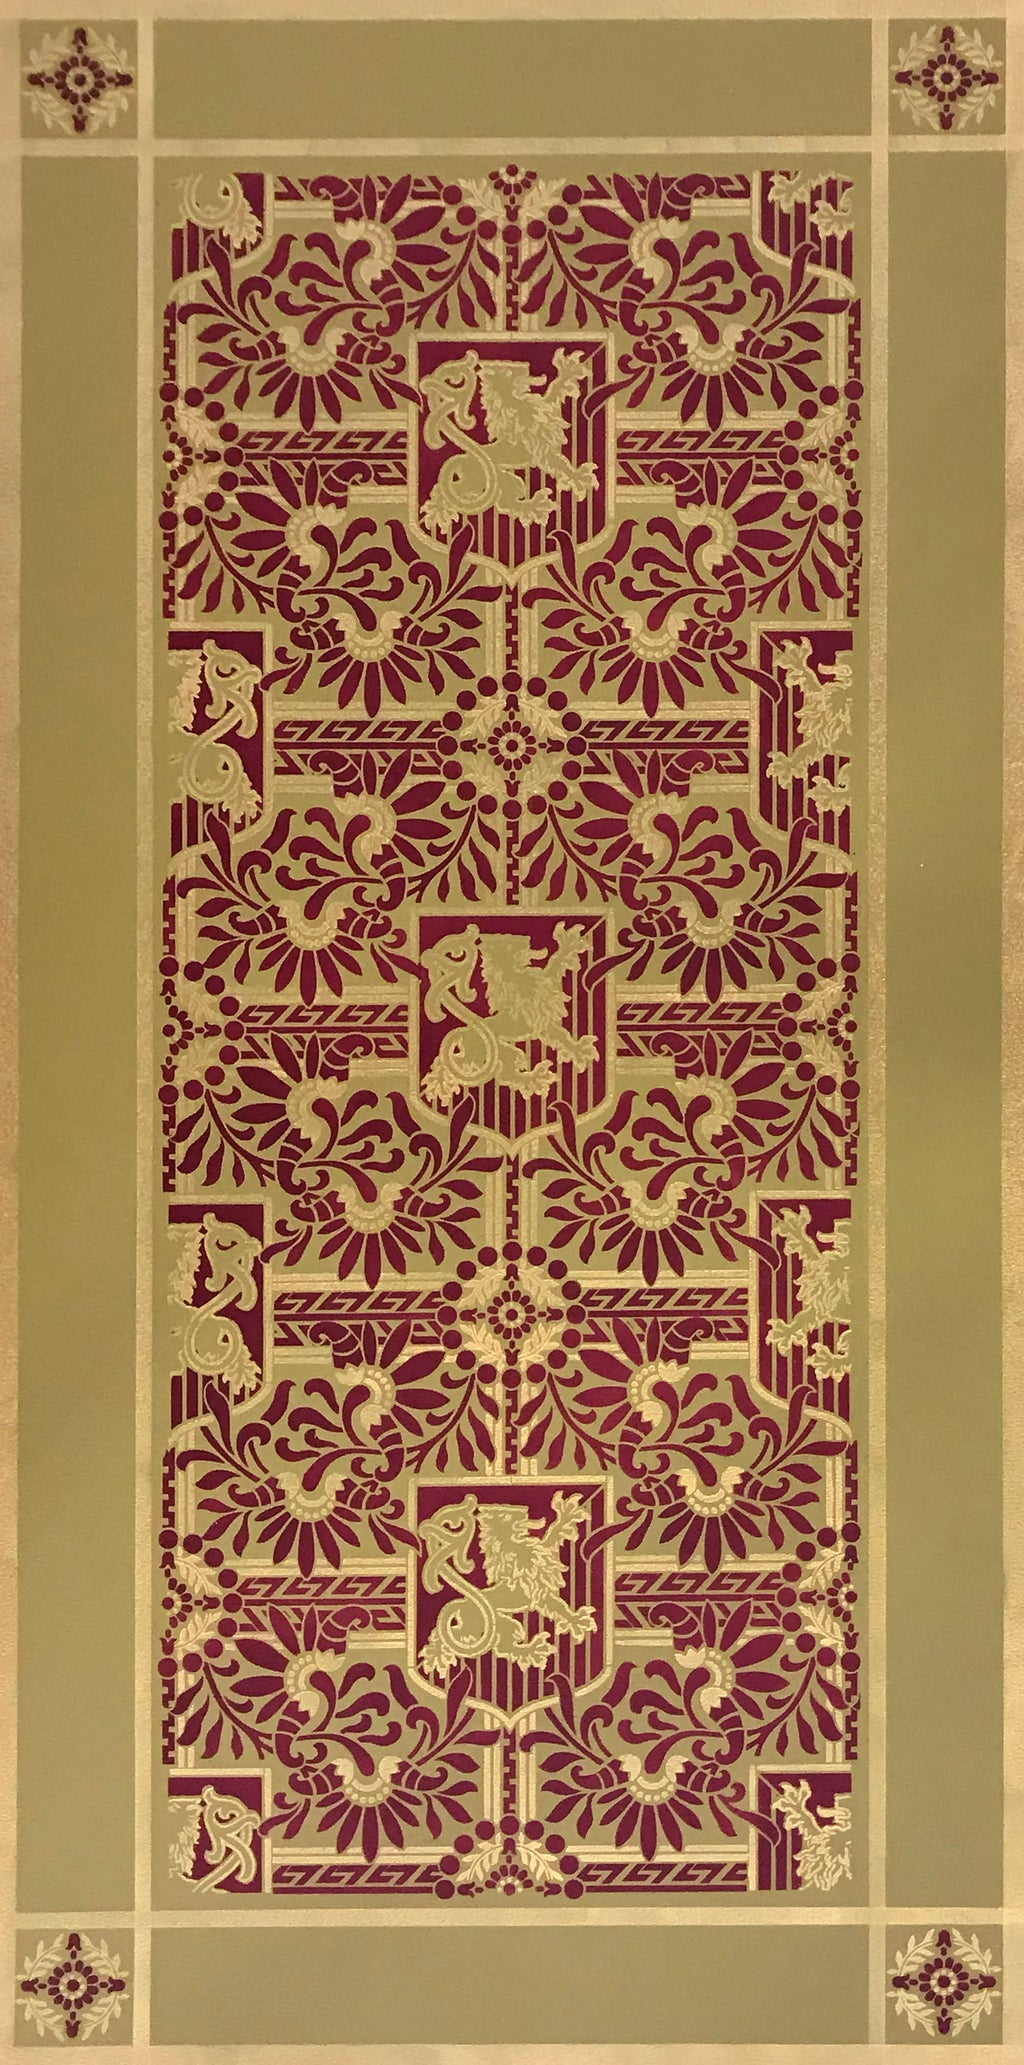 This is a full image of this floorcloth, based on a wallpaper pattern, c.1886, from the A.W.P.M.A. (American Wallpaper Manufacturer's Association). This floorcloth deploys the original wallpaper palette.